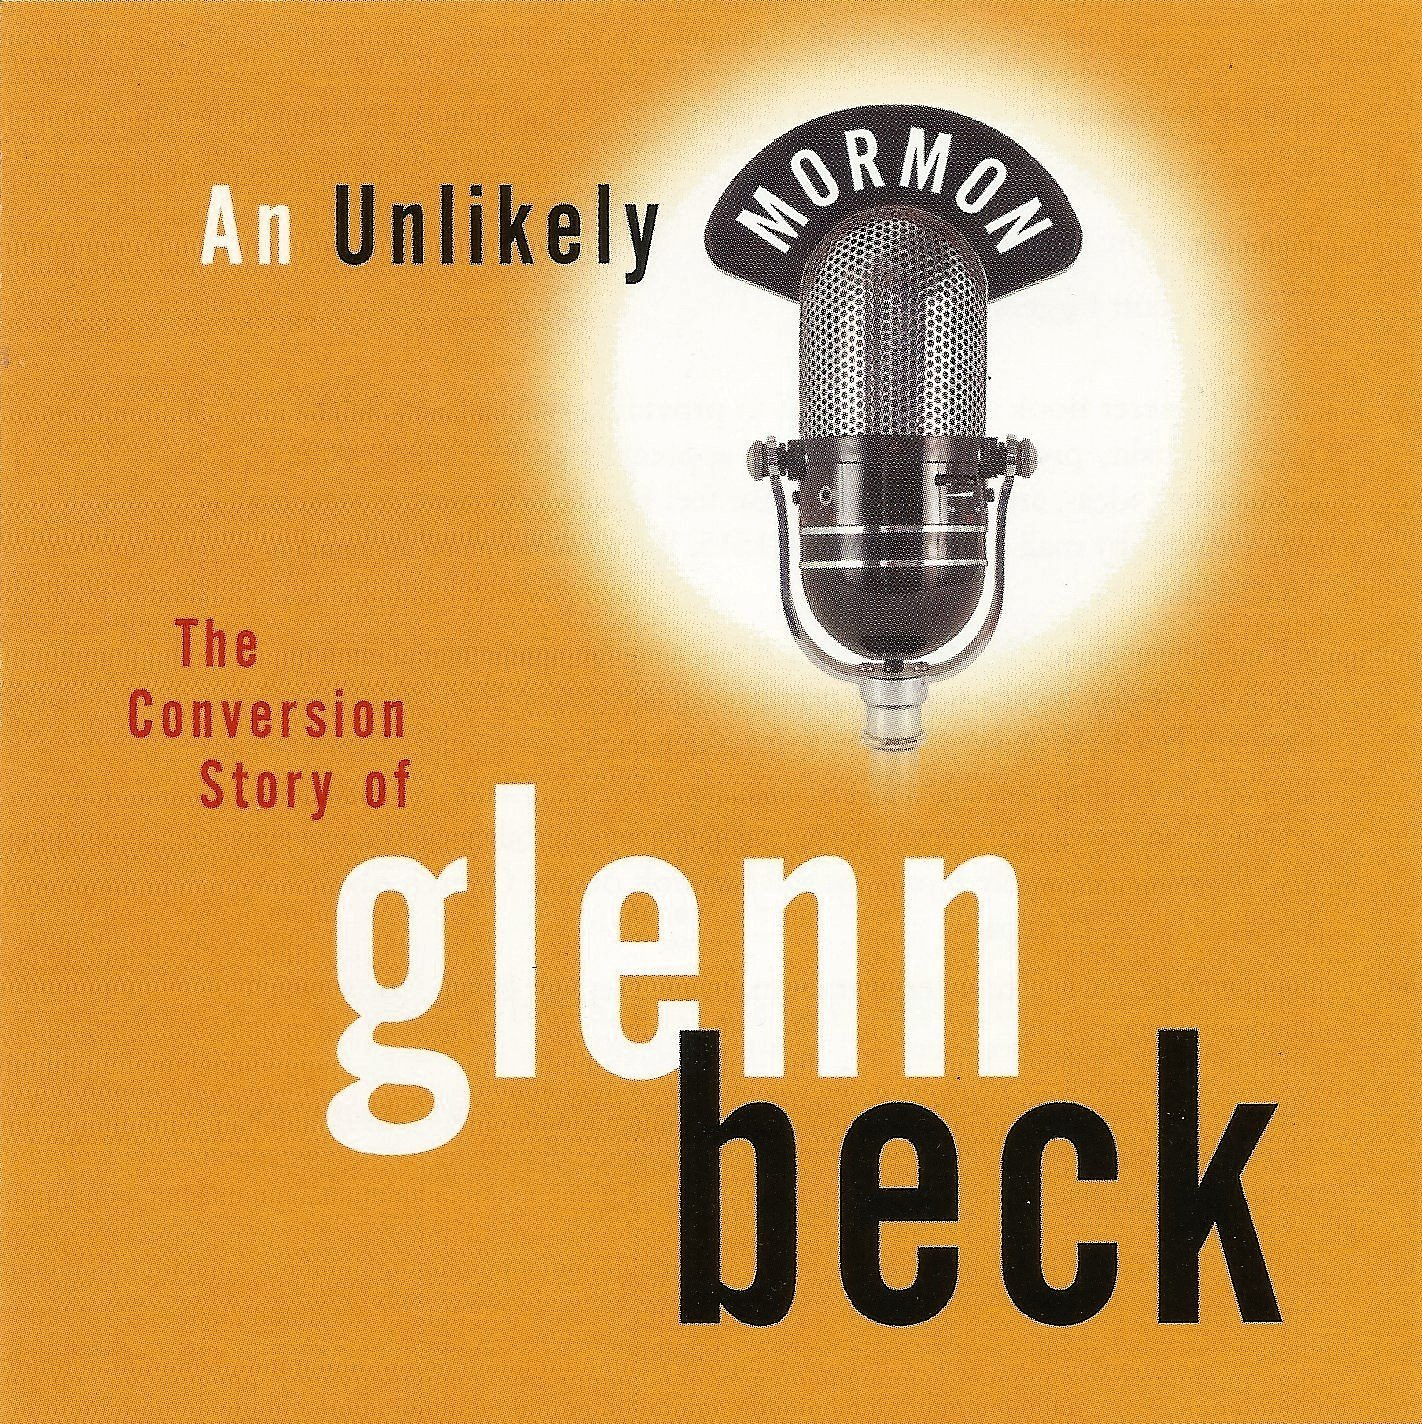 AN UNLIKELY MORMON - Audio CD - The Conversion Story of Glenn Beck pdf